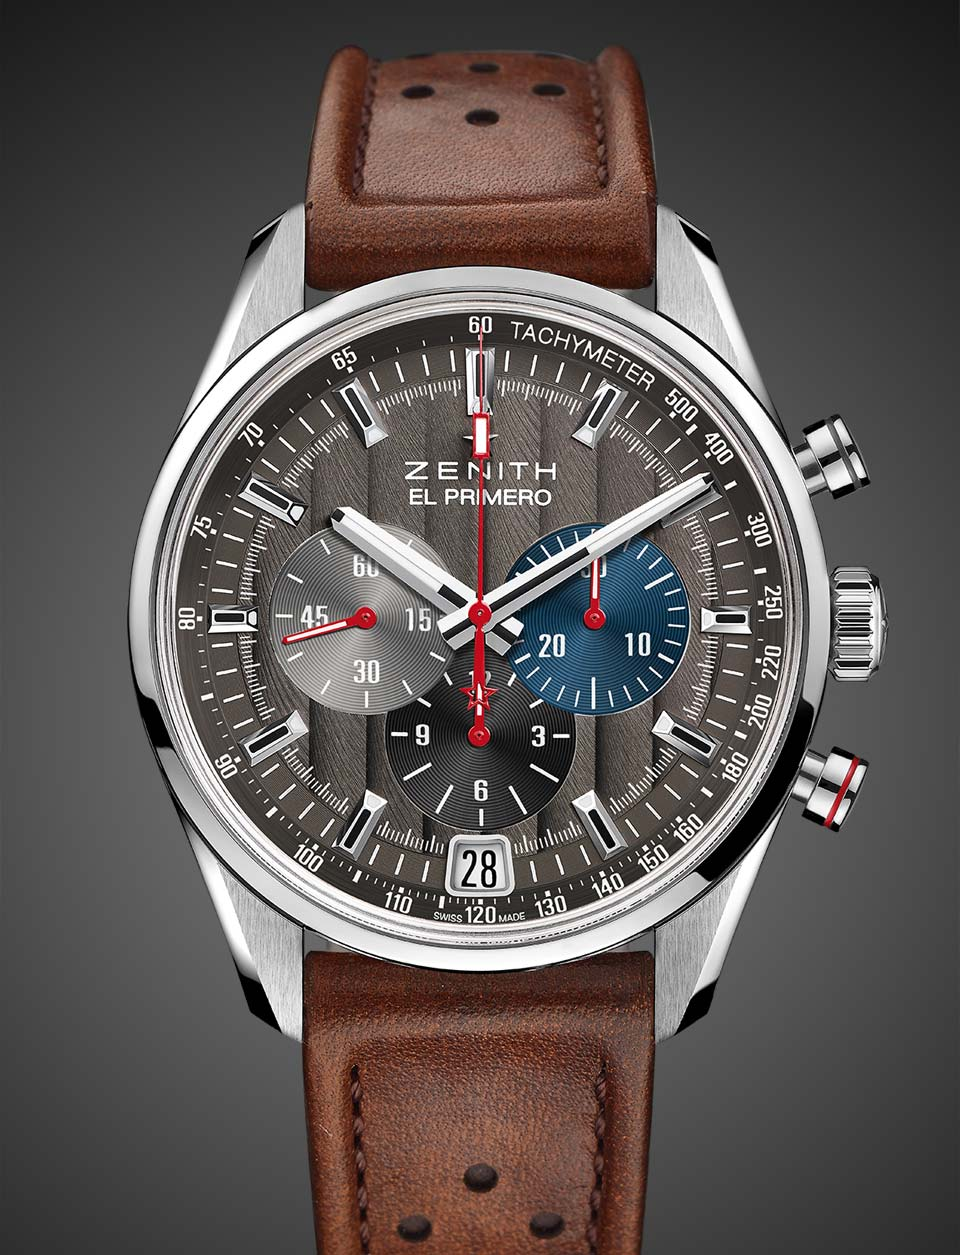 zenith el primero 36 000 vph classic cars time and watches. Black Bedroom Furniture Sets. Home Design Ideas